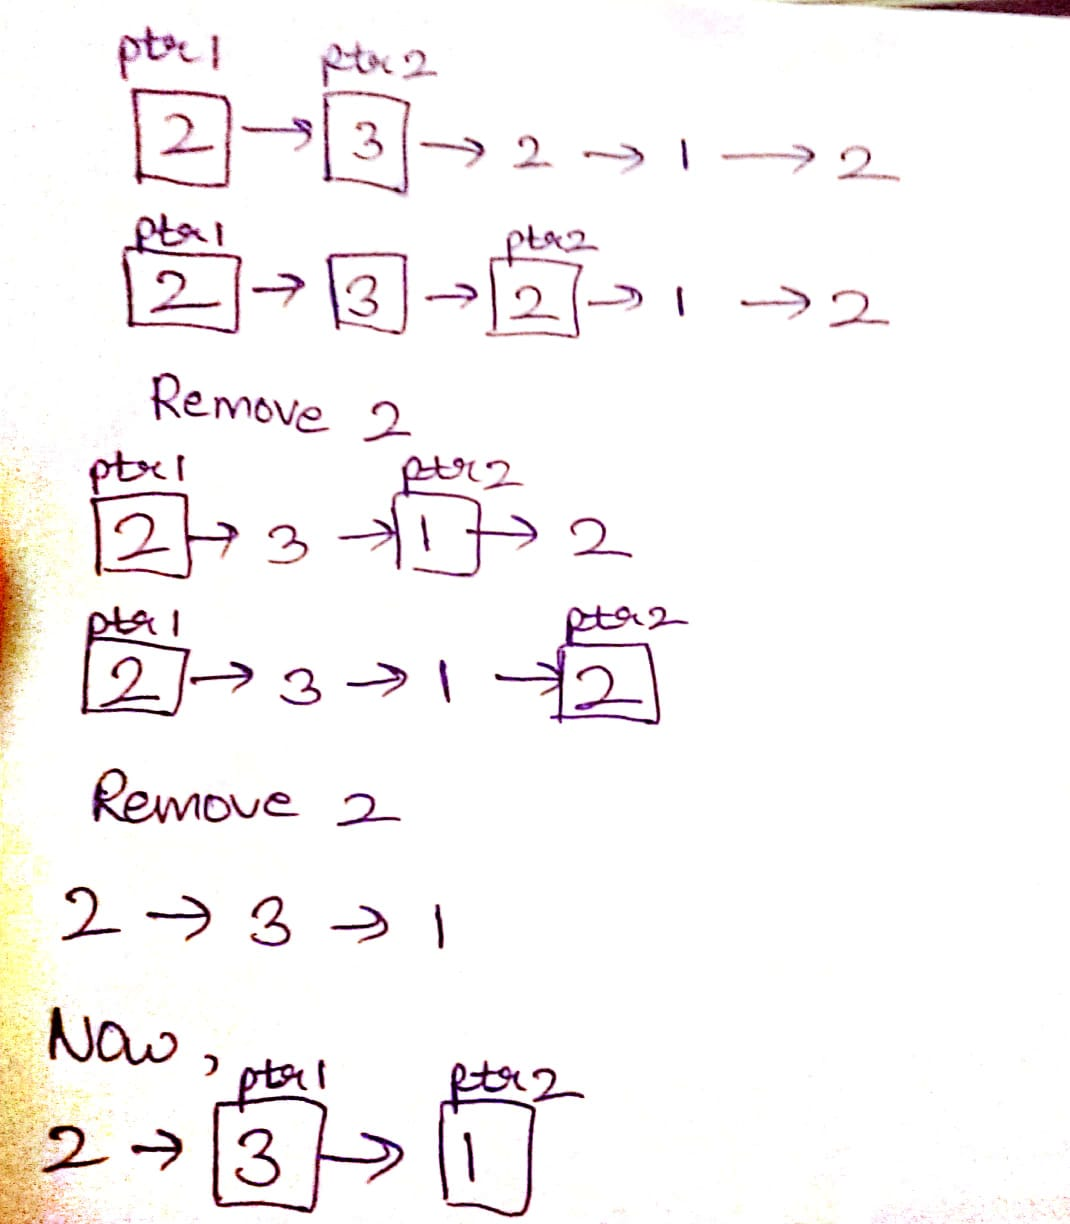 Remove duplicate from a linked list in C++